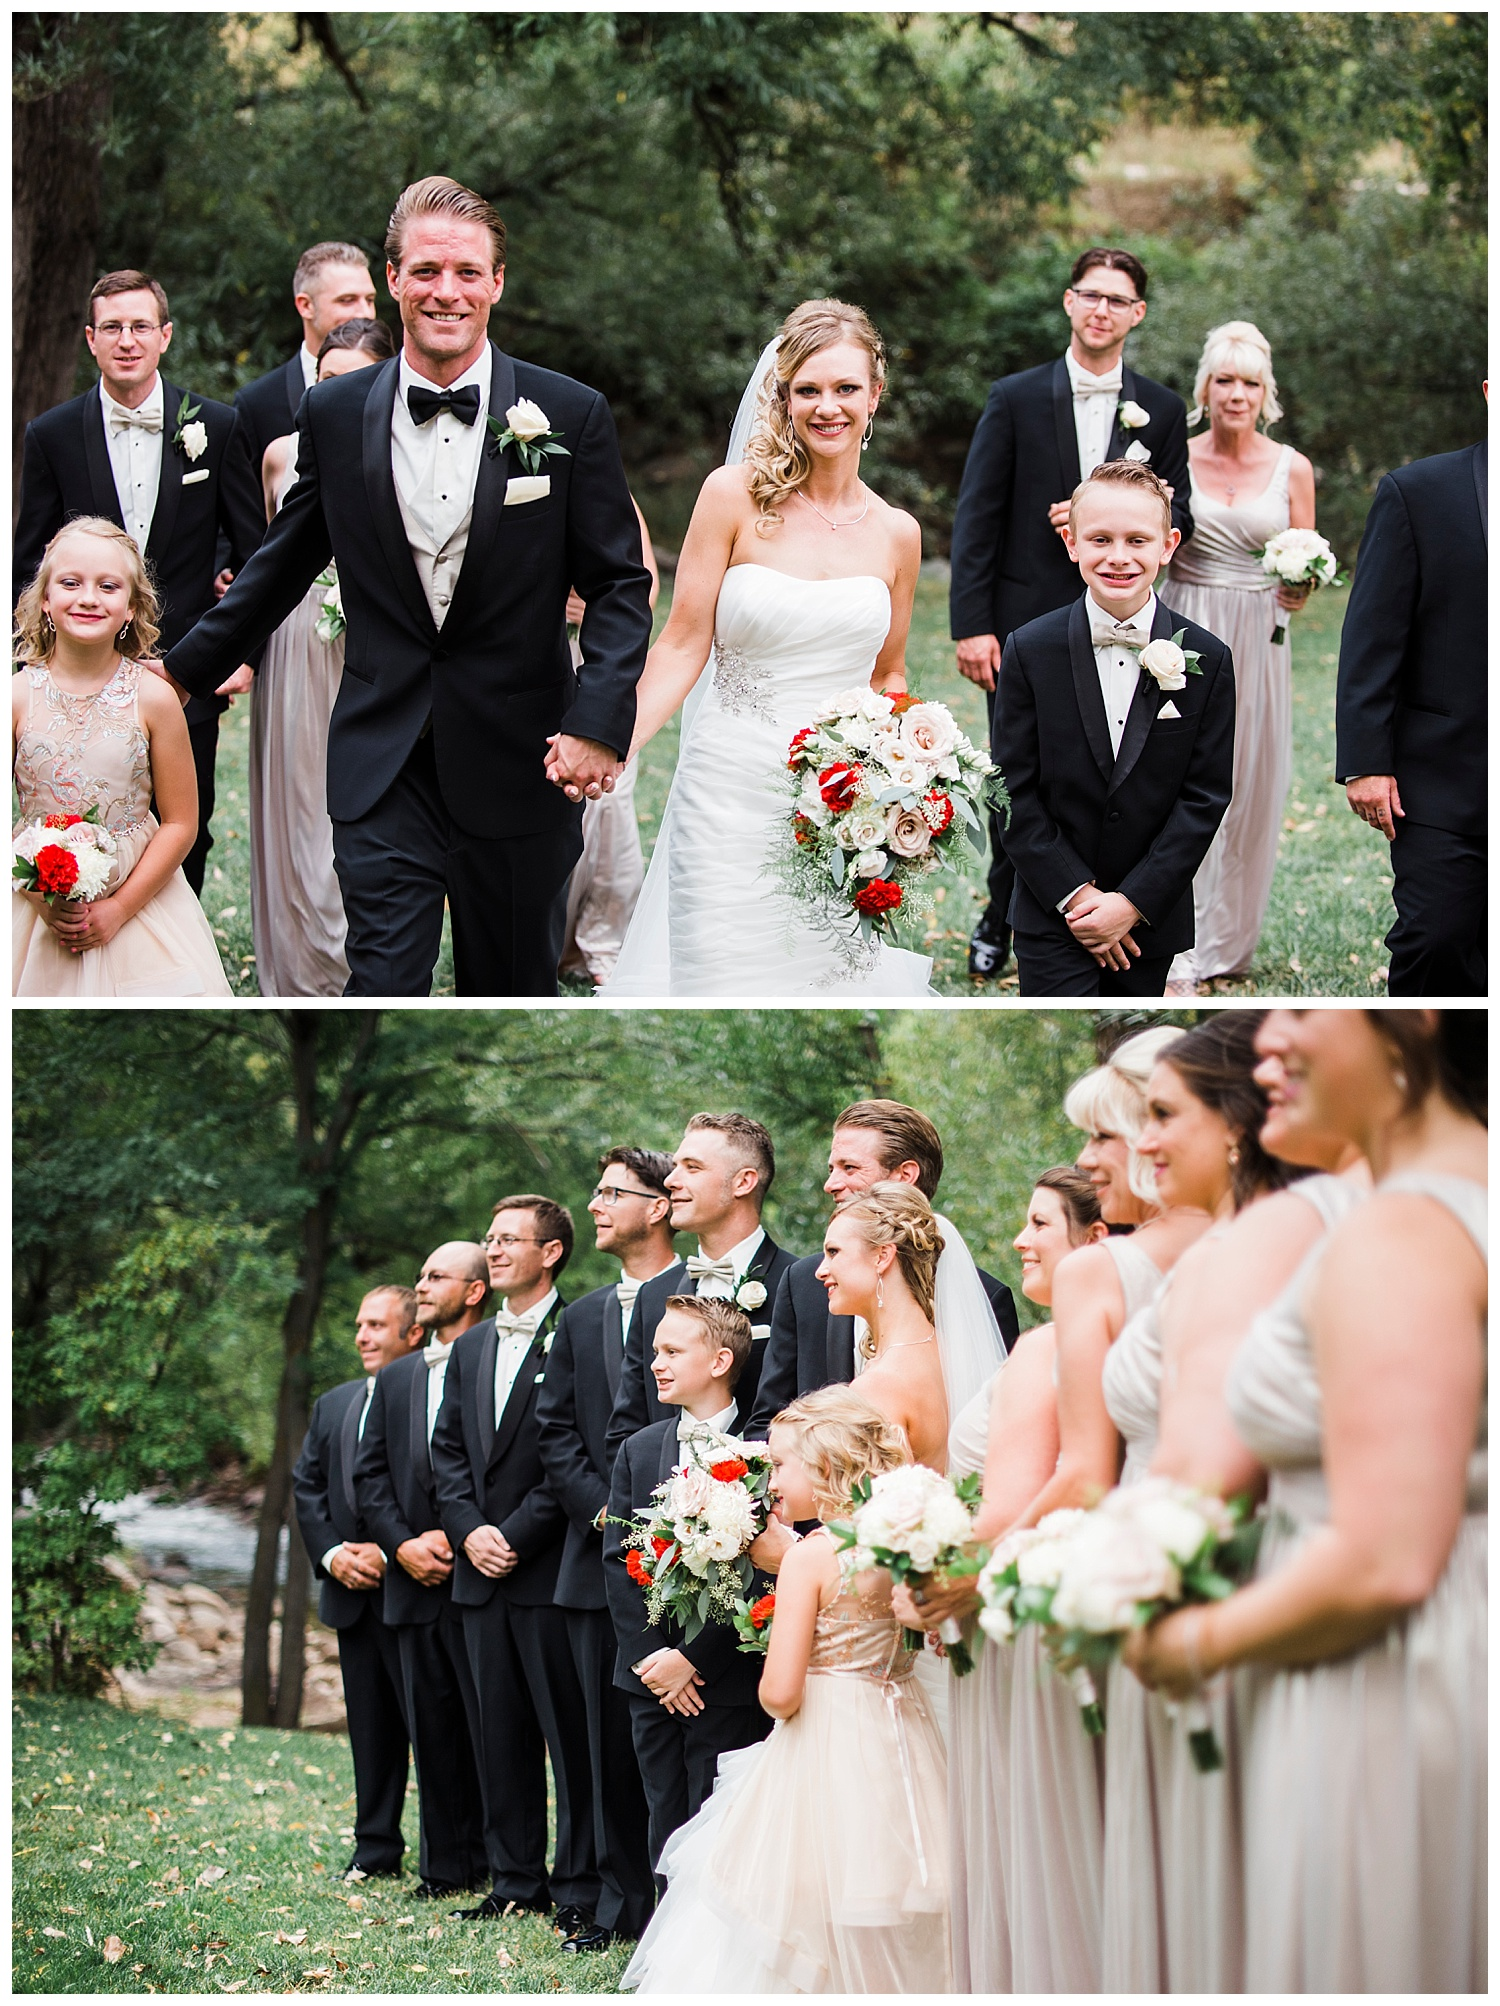 Wedgewood_Boulder_Creek_Wedding_Venue_Colorado_Photographer_Apollo_Fields_025.jpg